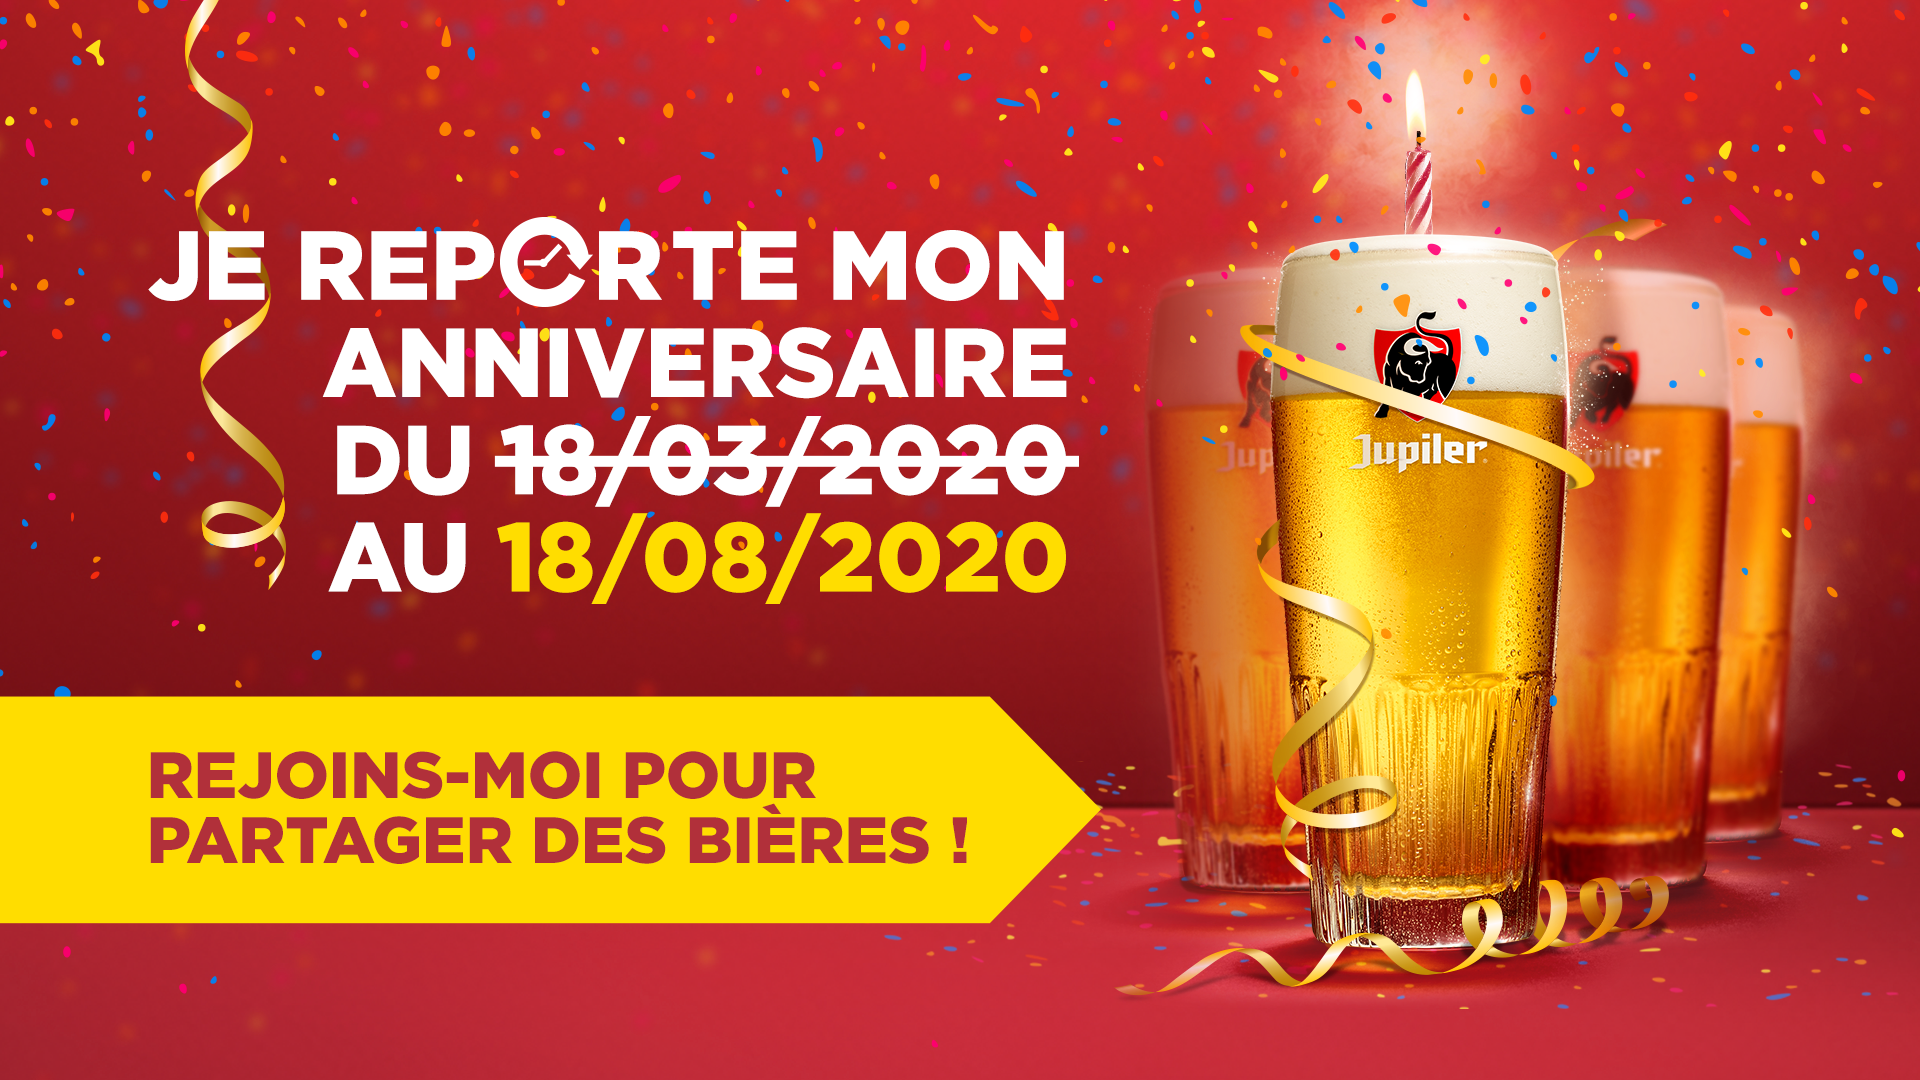 Jupiler_PostponeYourBirthday_FB_EventBanner_FR